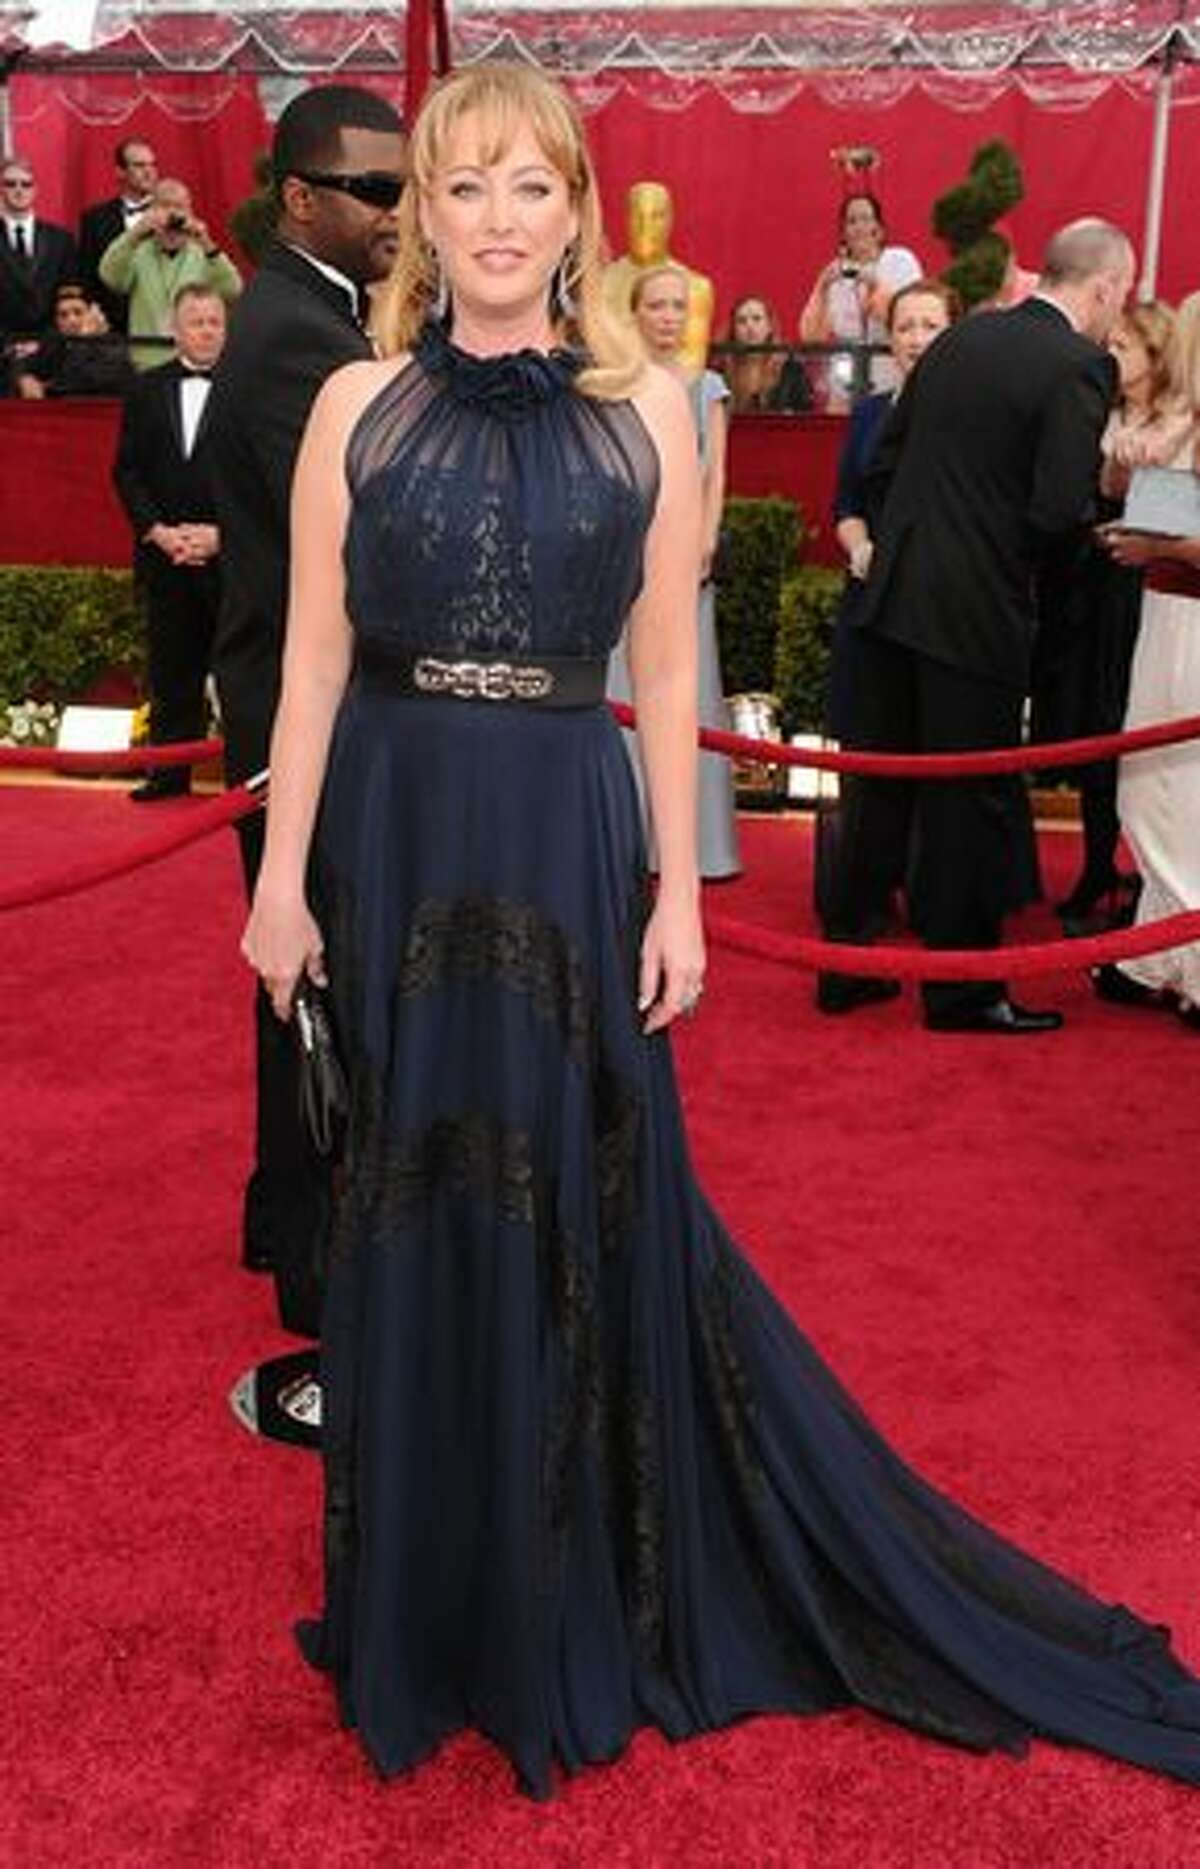 Actress Virginia Madsen arrives at the 82nd Annual Academy Awards held at Kodak Theatre in Hollywood, California.